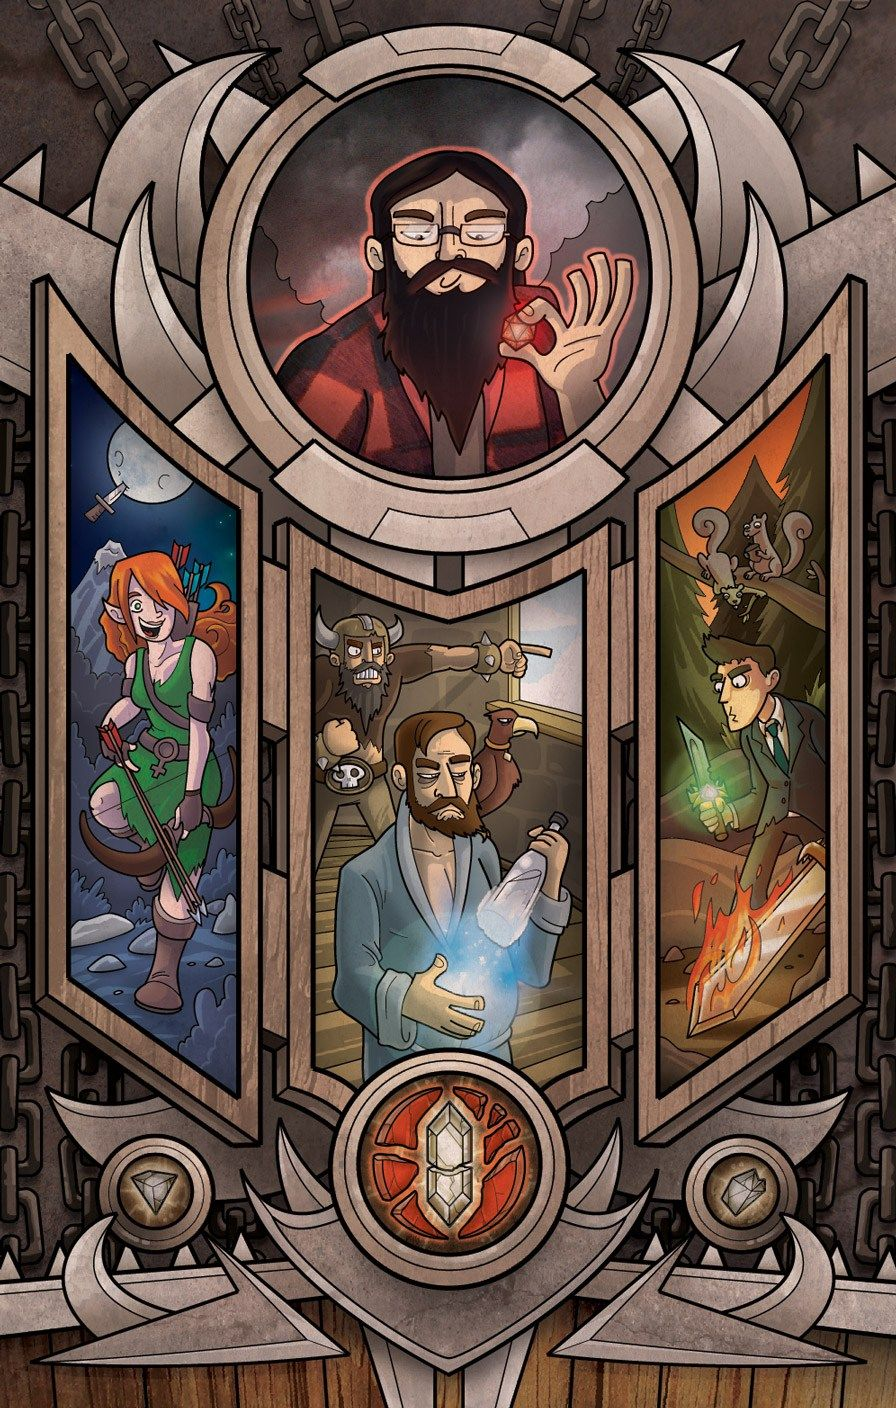 Harmontown Dungeons & Dragons Poster by Tony Fraguero